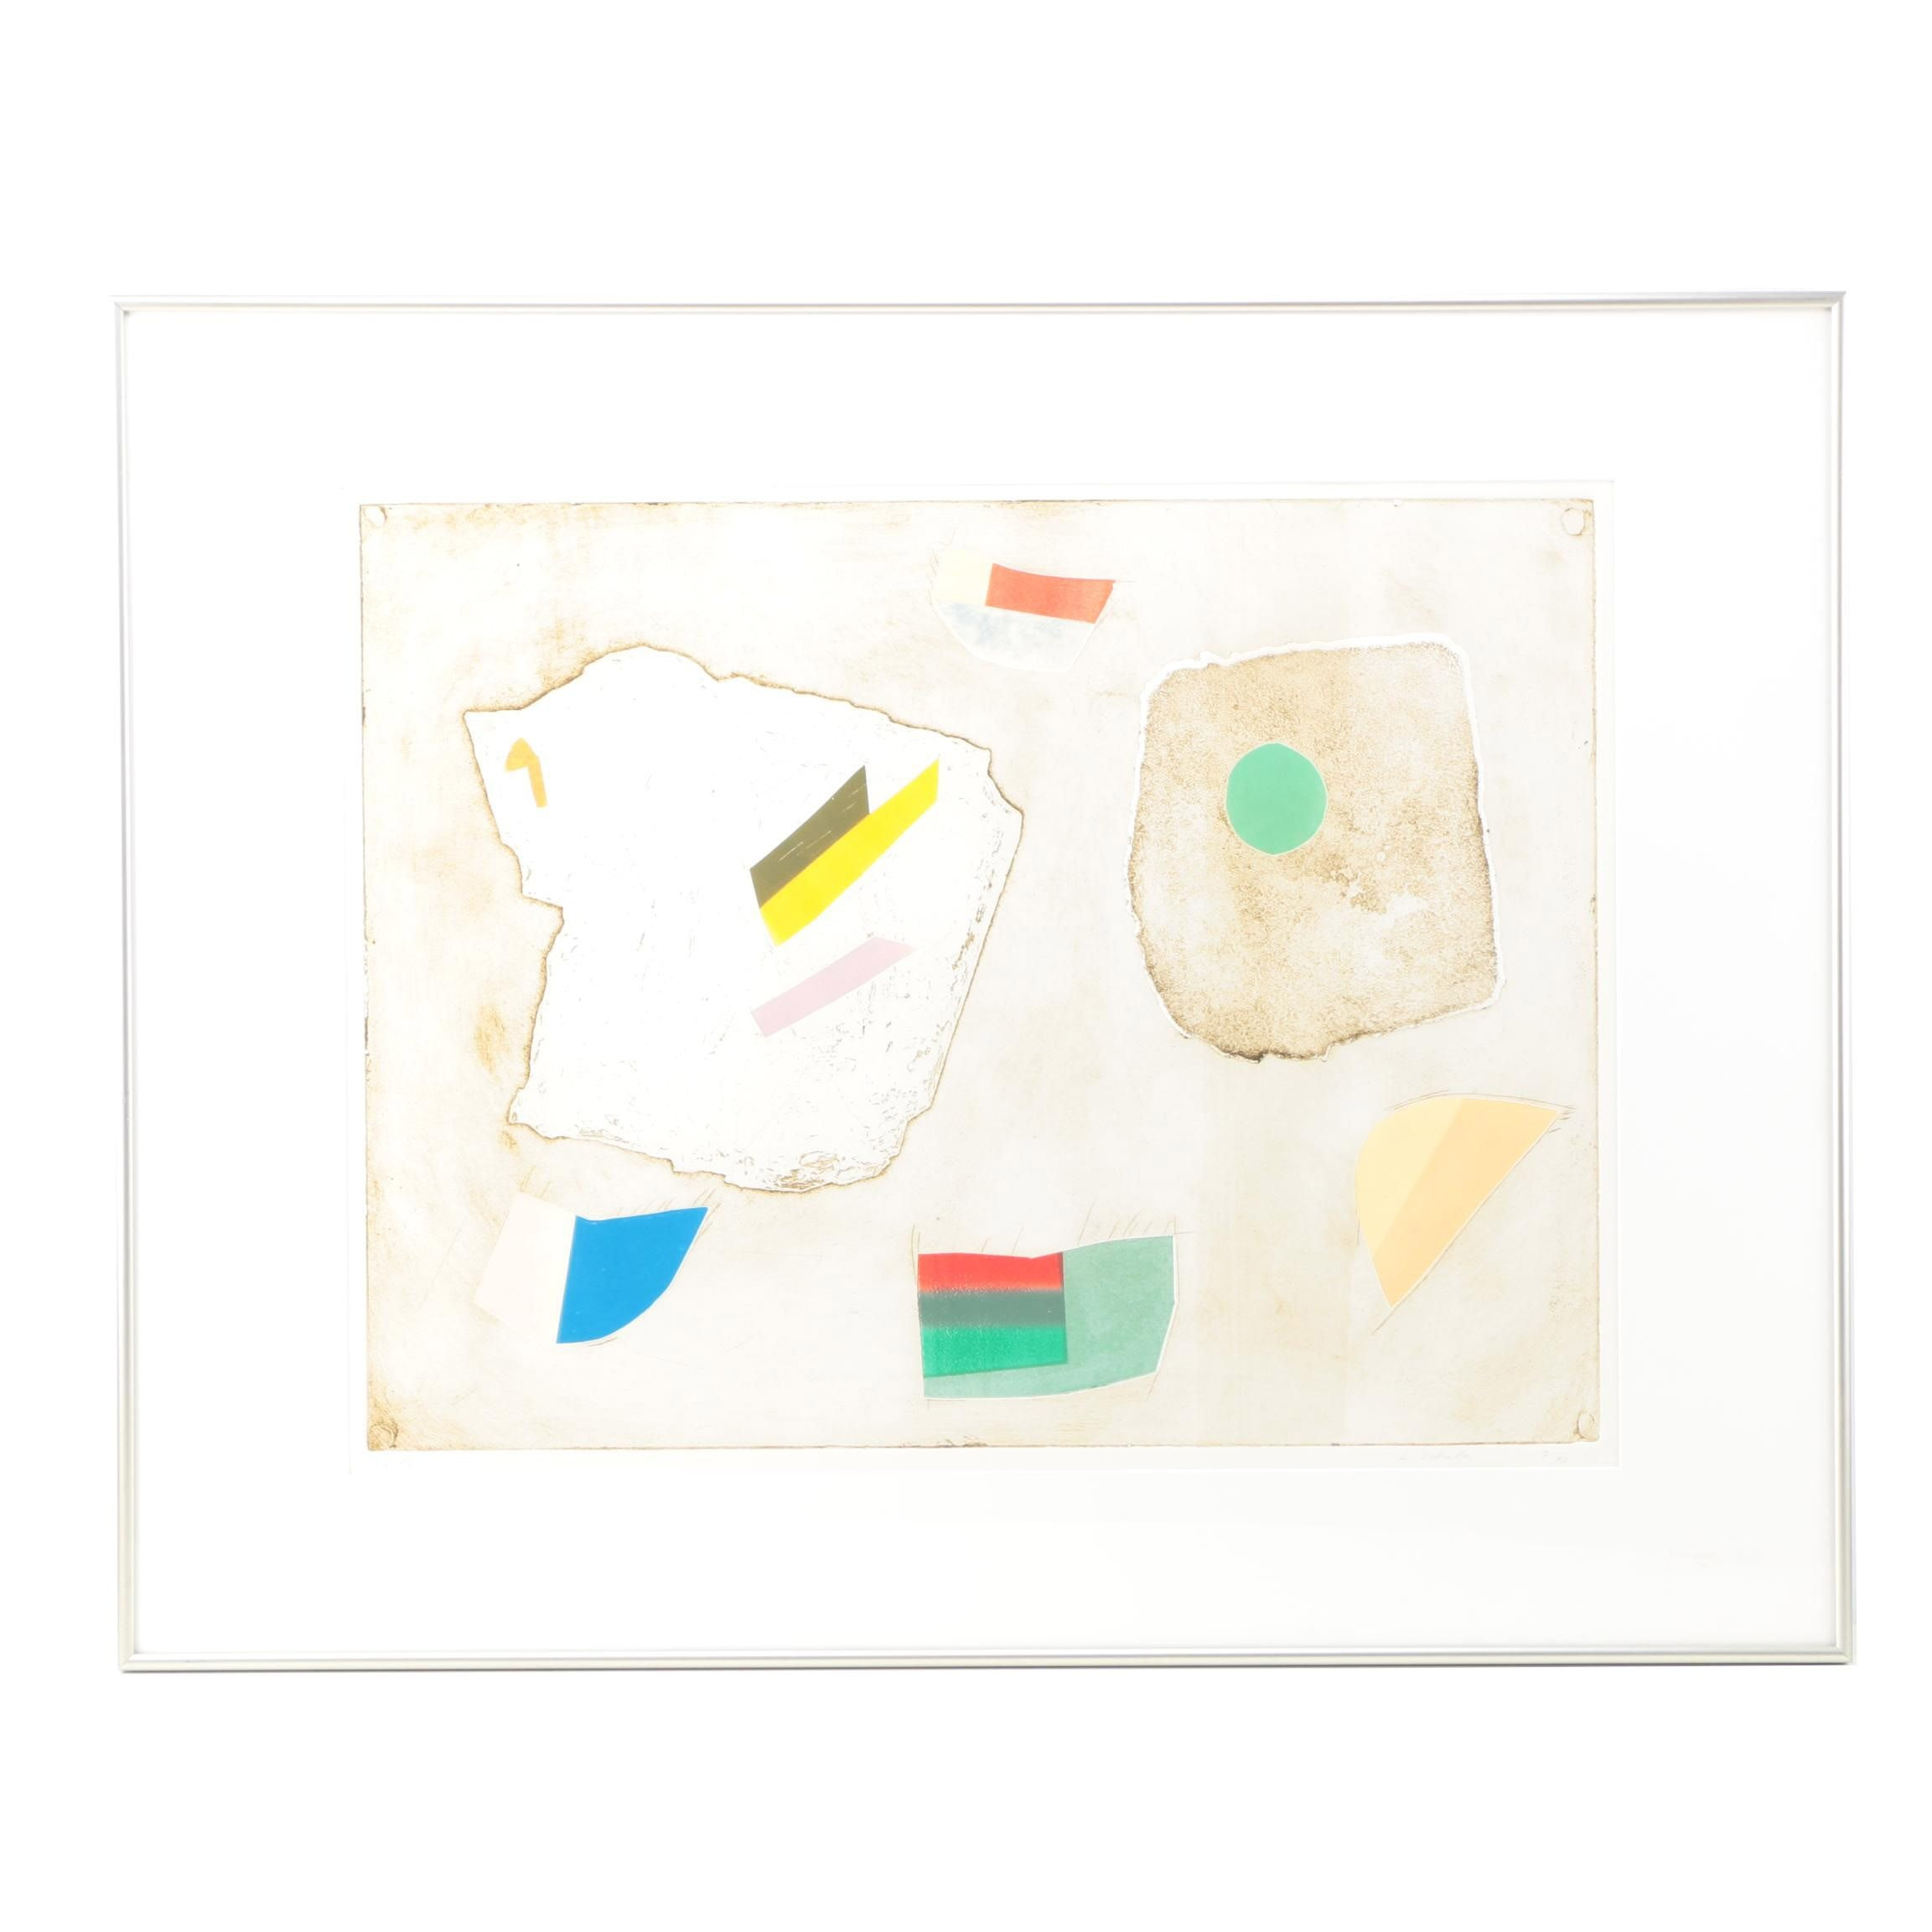 Signed Aquatint Etching with Collagraphy Elements on Paper